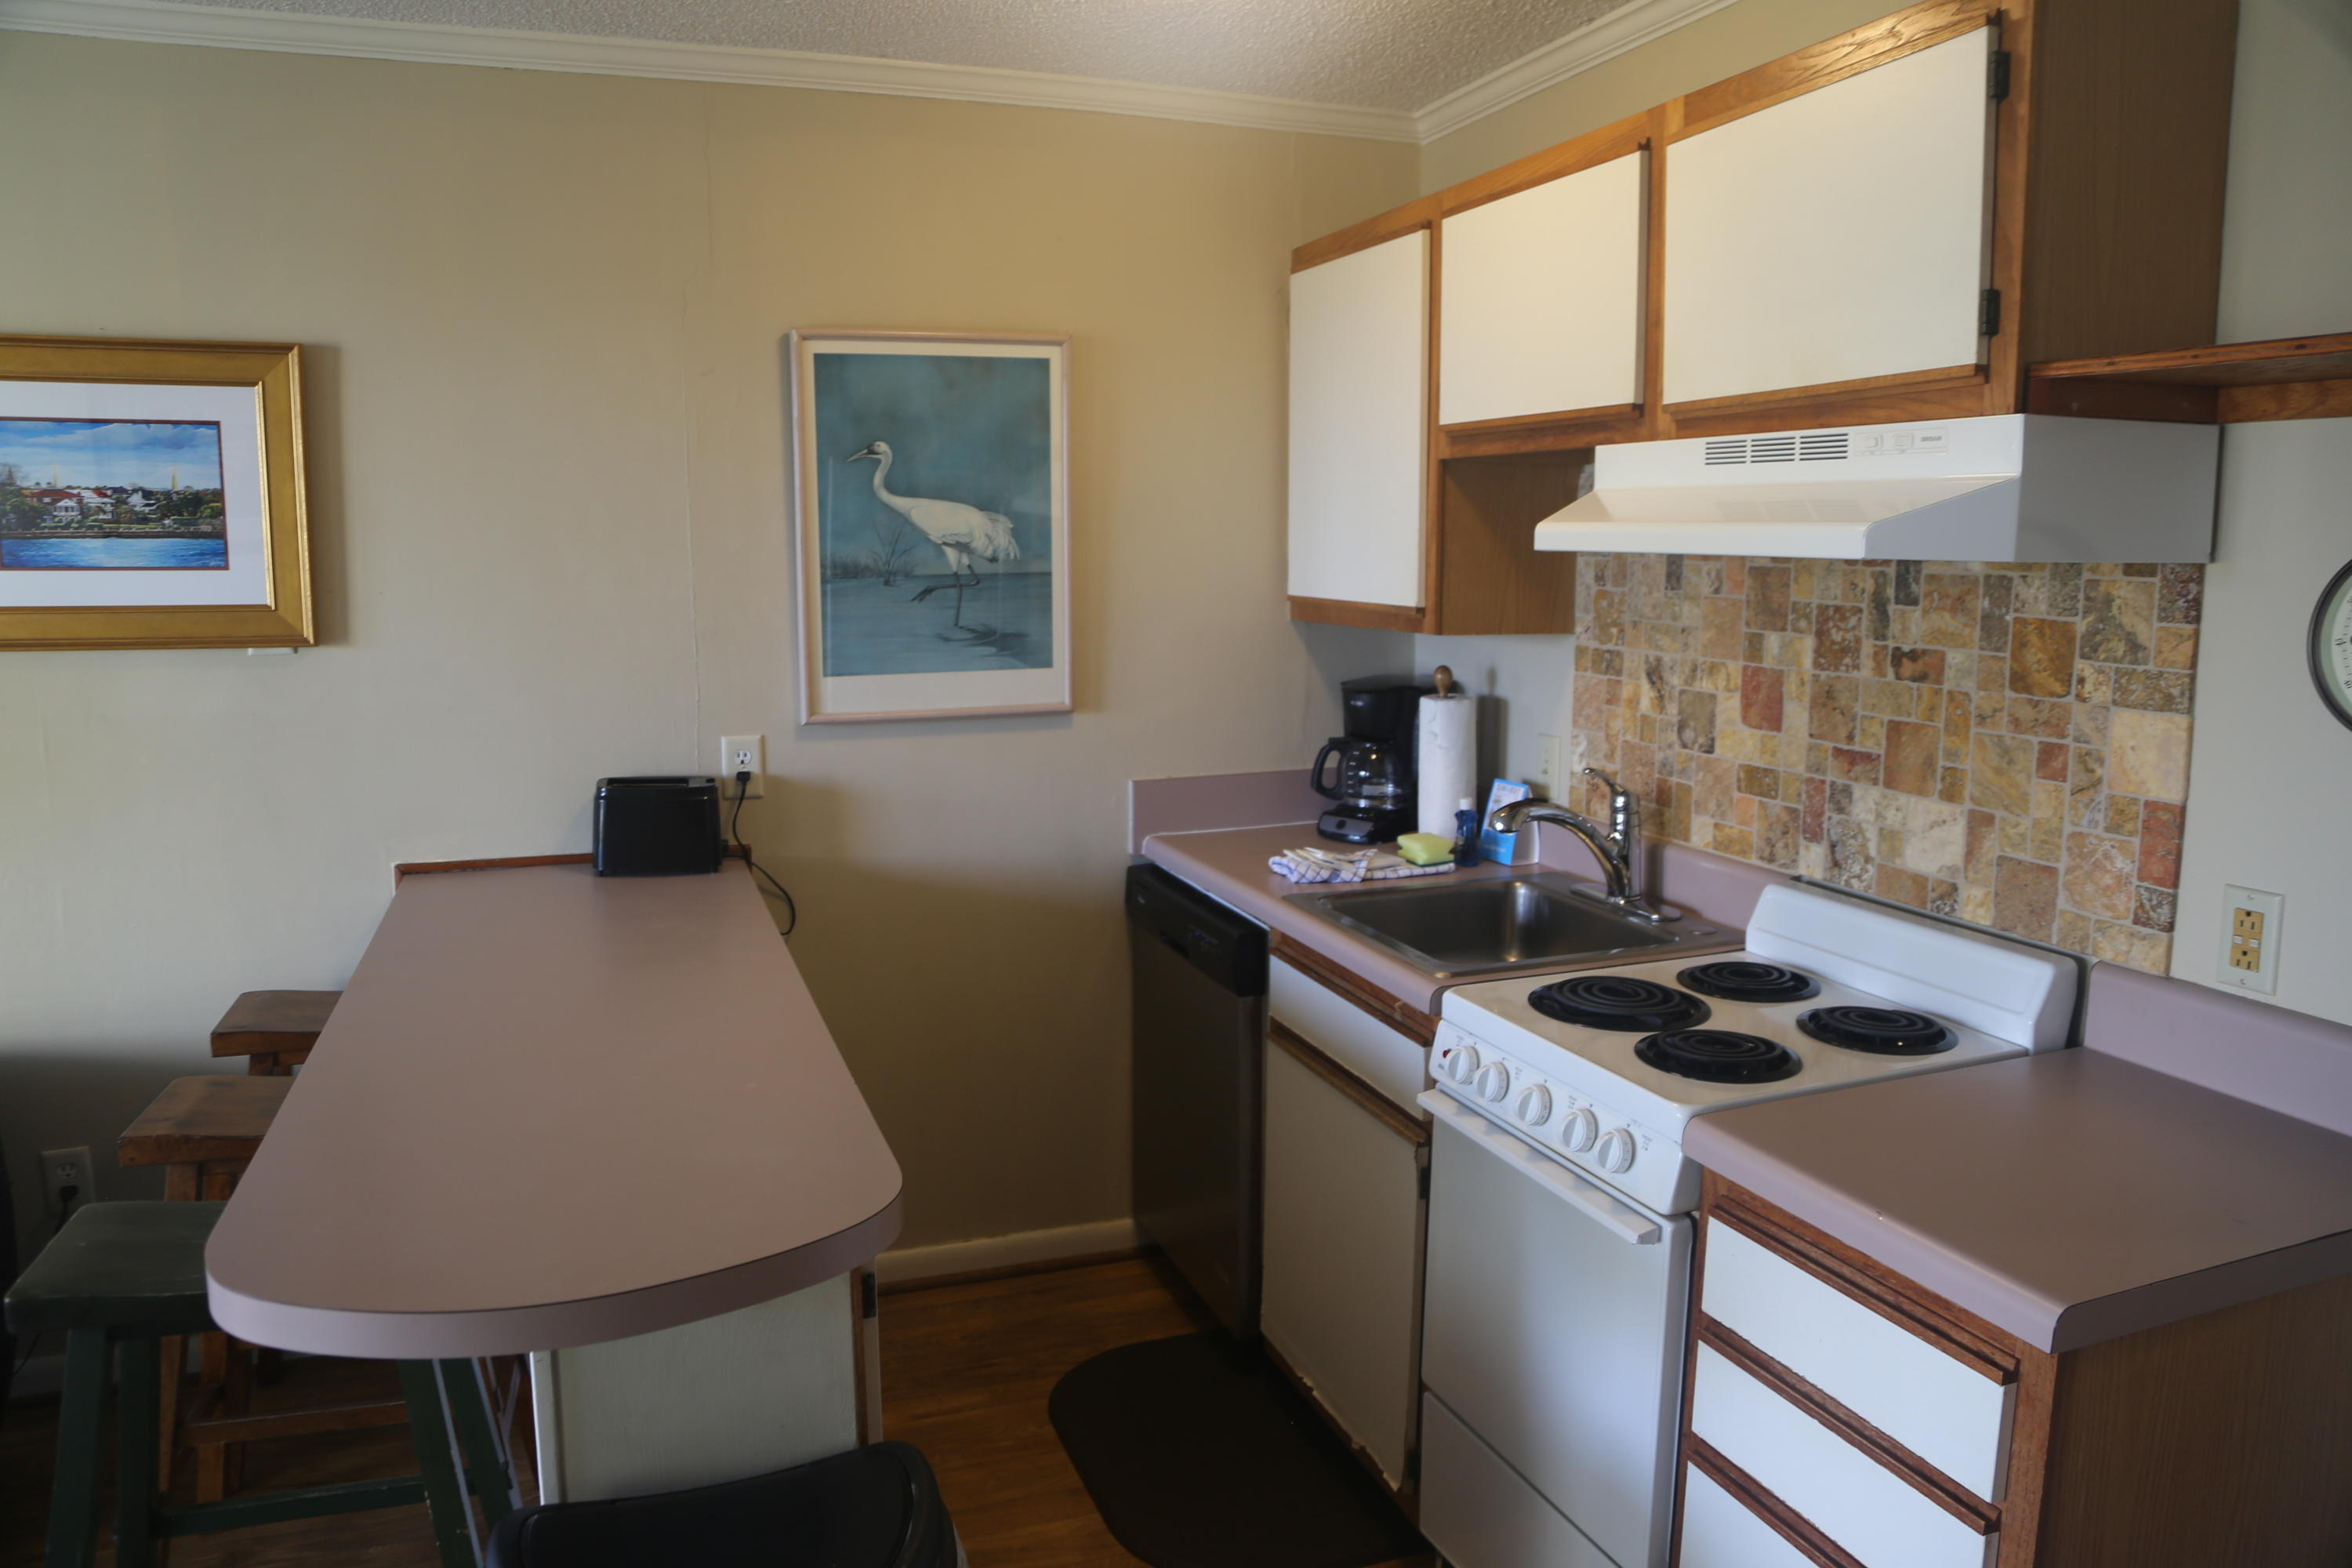 Sea Cabin On The Ocean Homes For Sale - 1300 Ocean, Isle of Palms, SC - 38